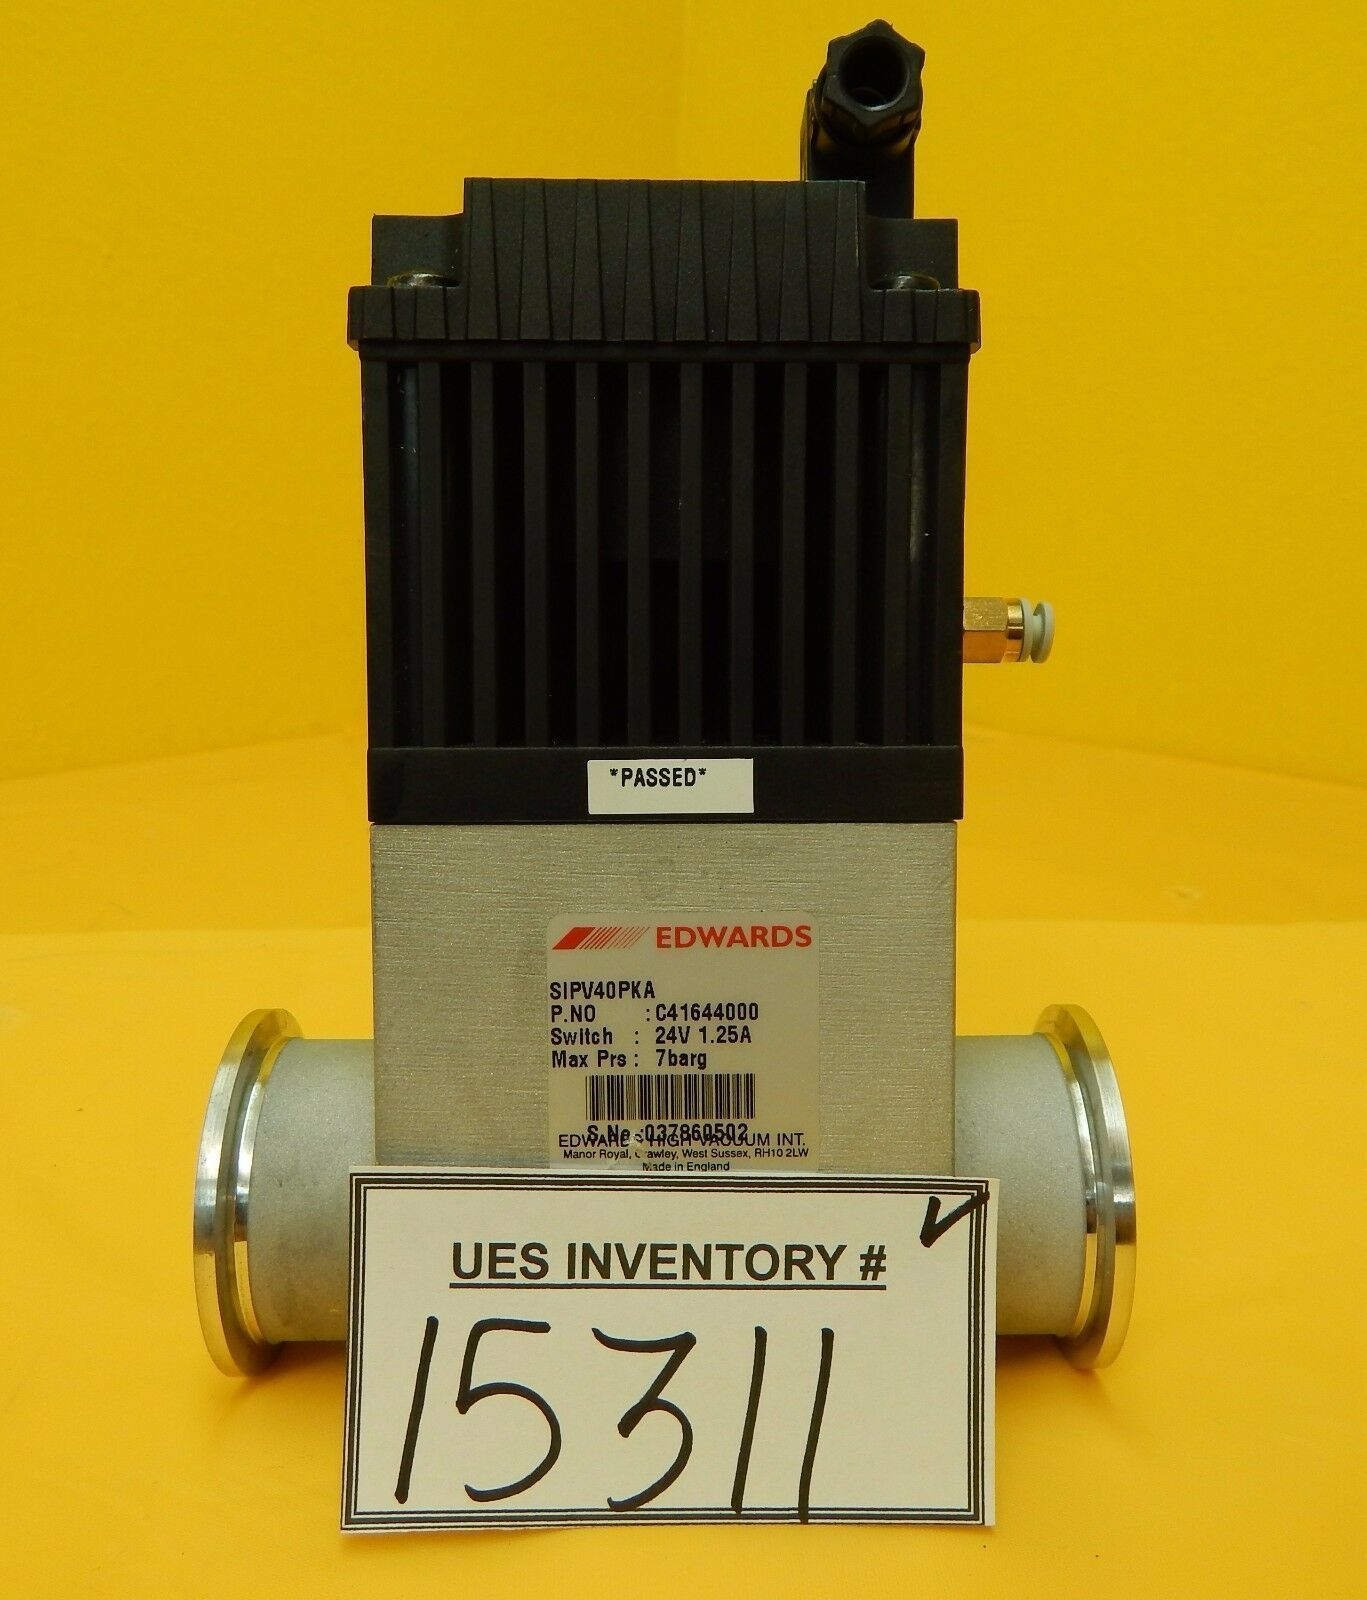 Edwards C41644000 Pneumatic Sealed Bellows Vacuum Valve SIPV40PKA Used Working